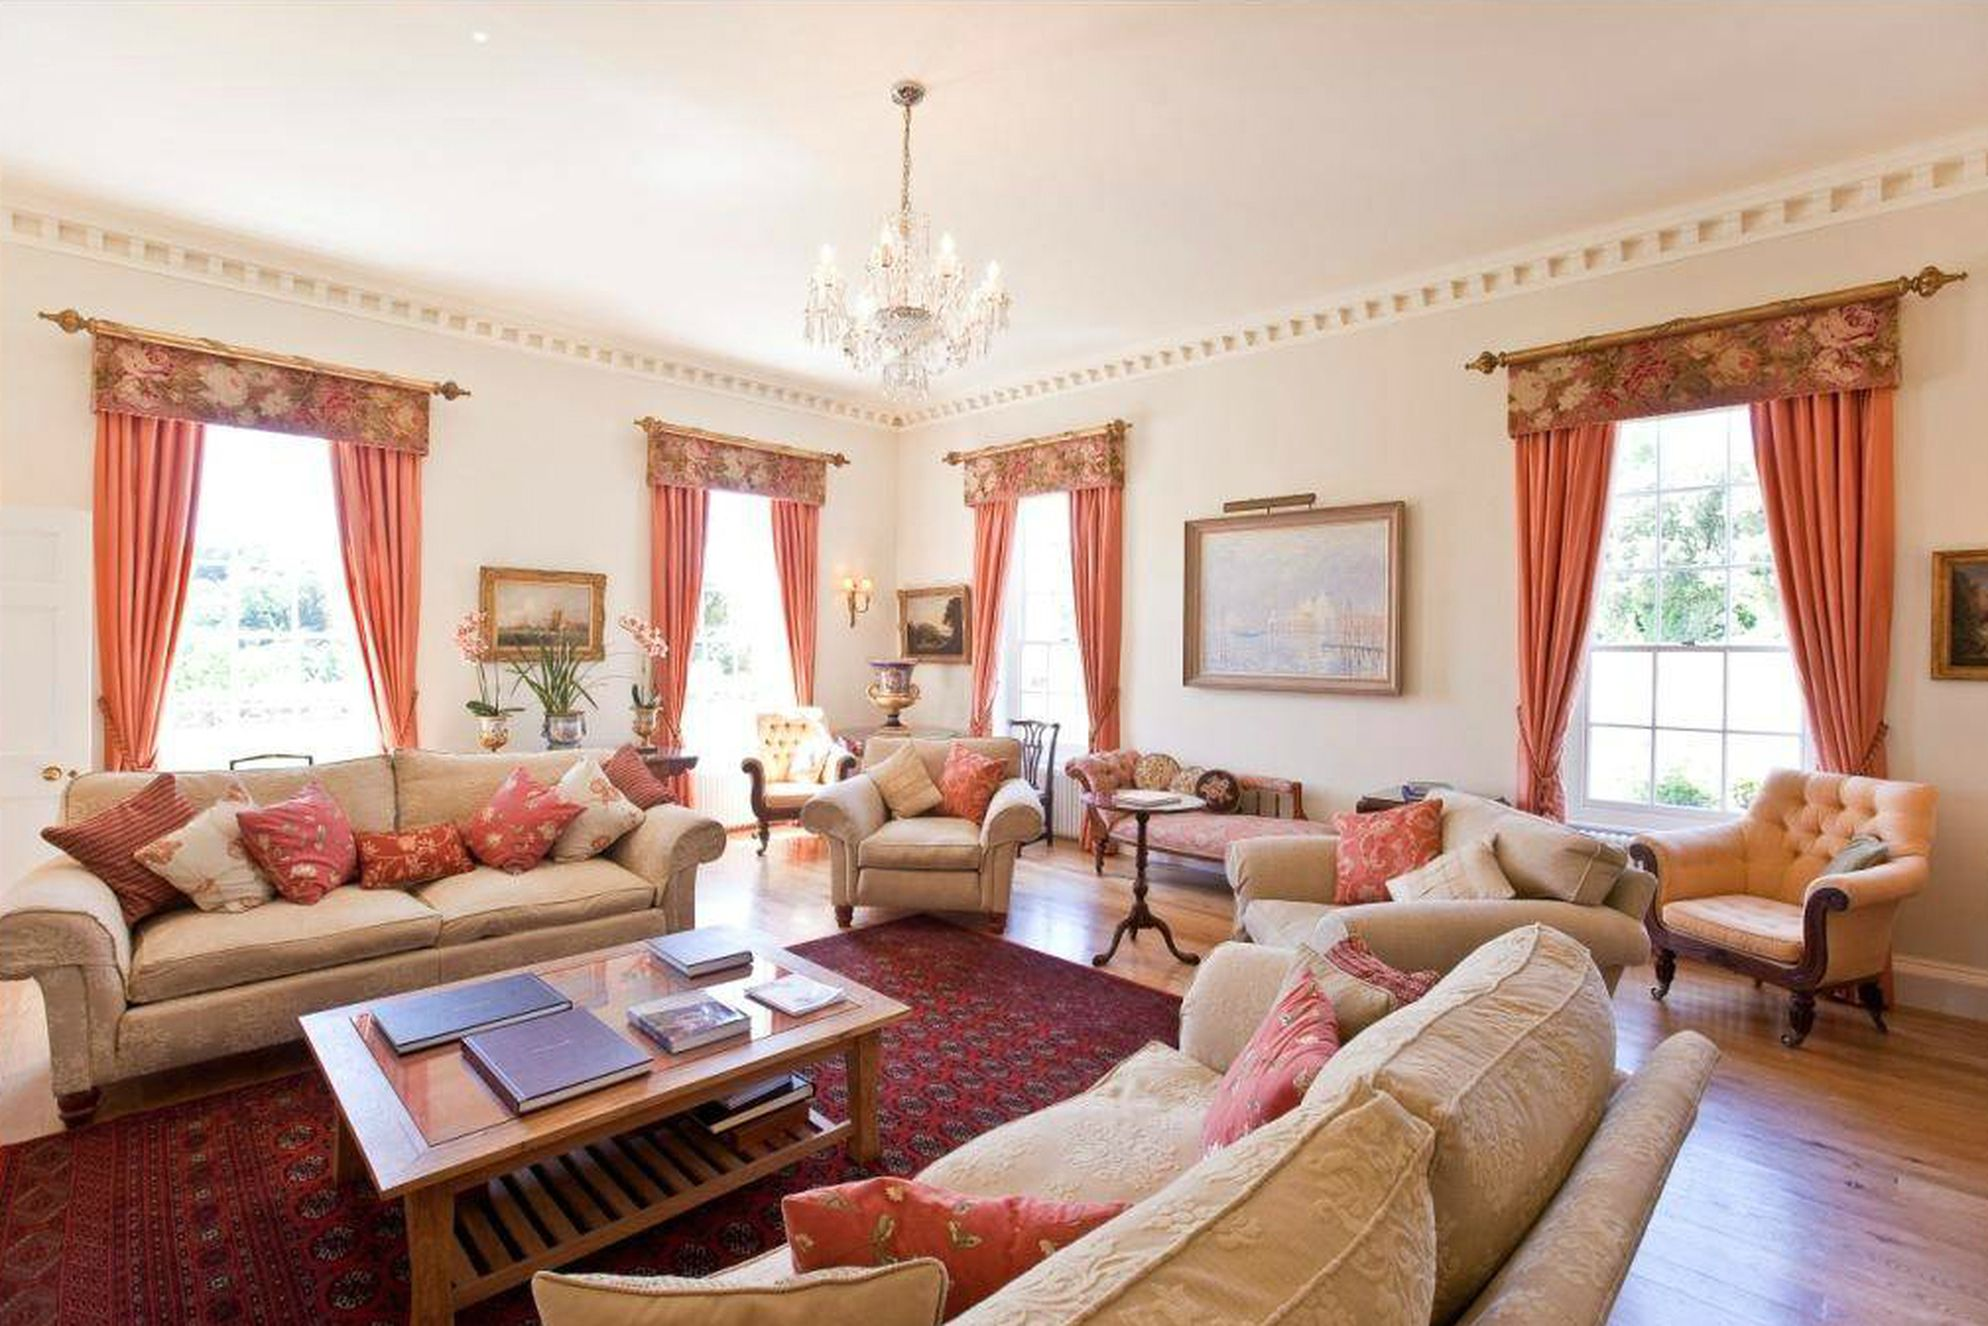 Living area at Pentillie Castle in Saltash, Cornwall with plenty of seating and comfy sofas